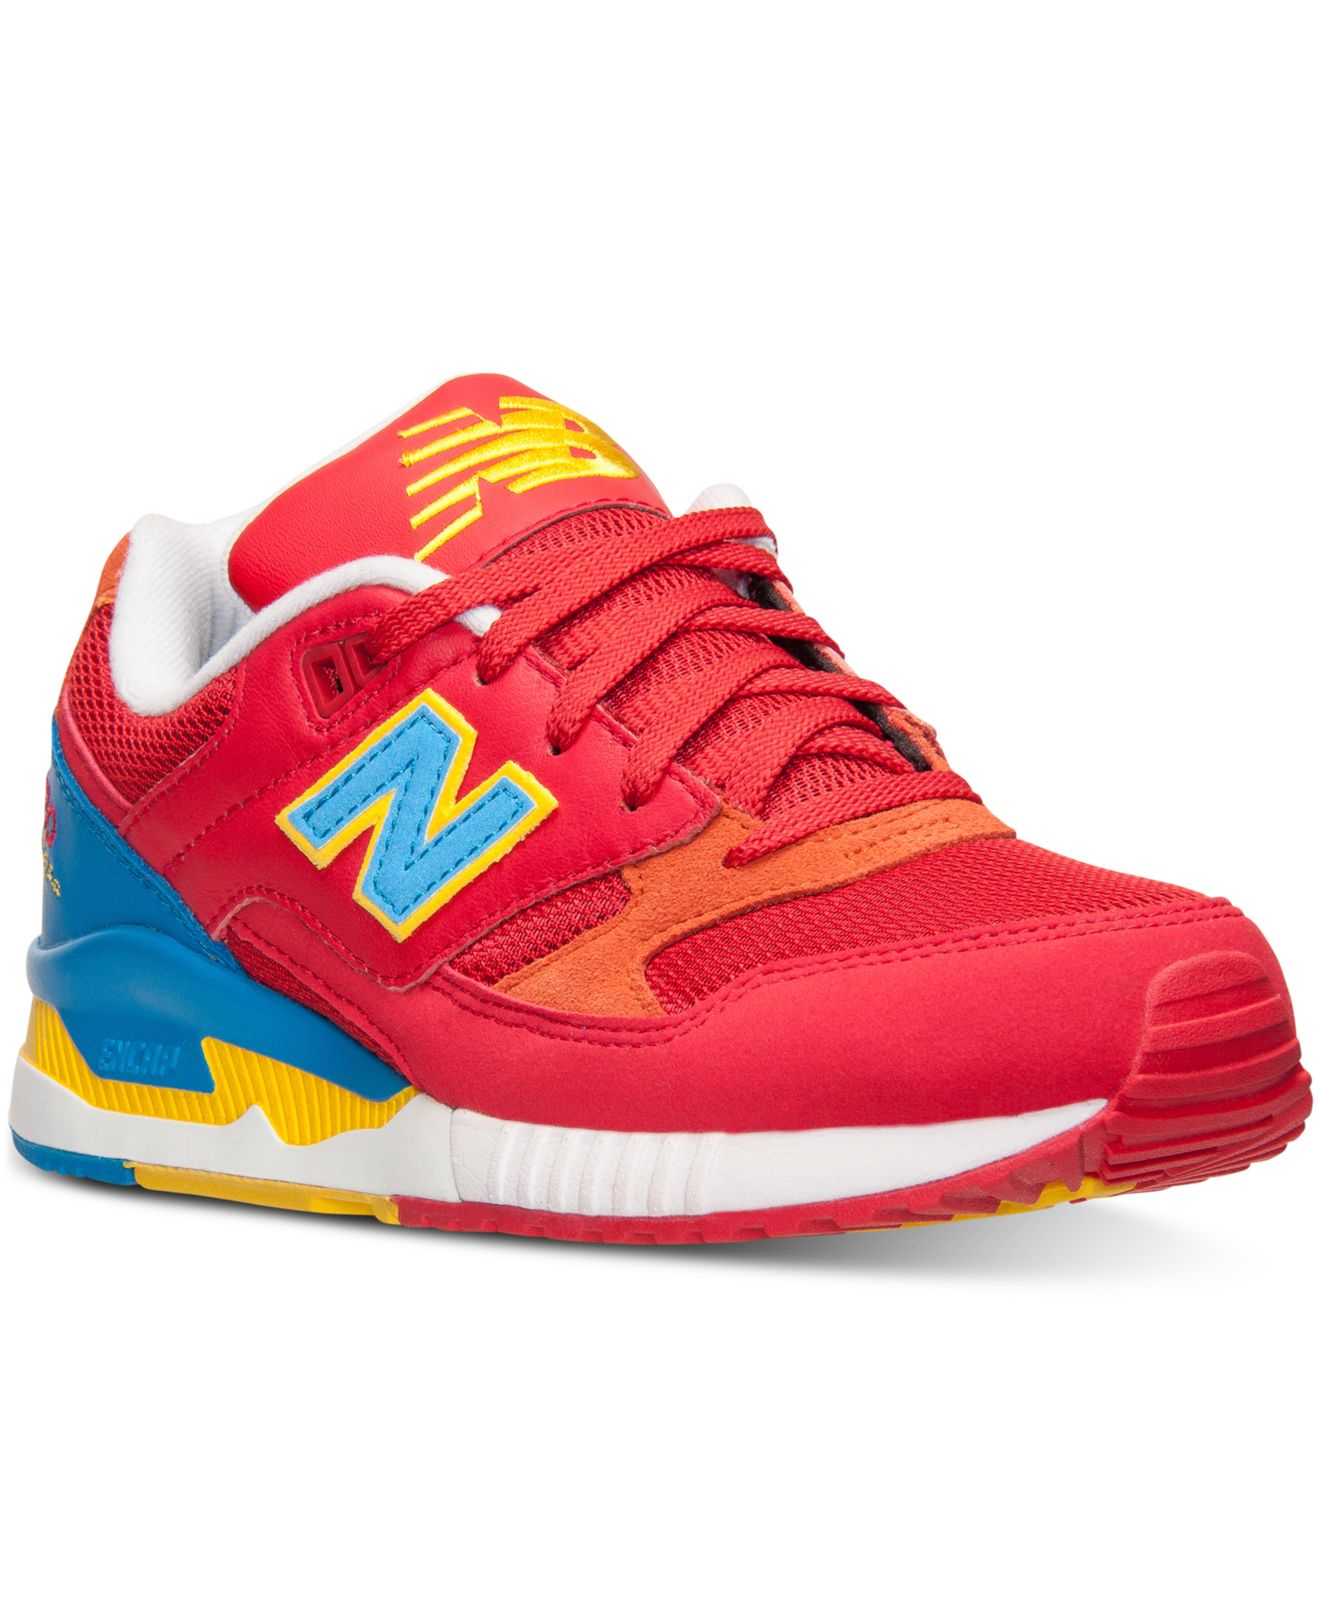 New Balance 530 Women Red/Blue Shoes